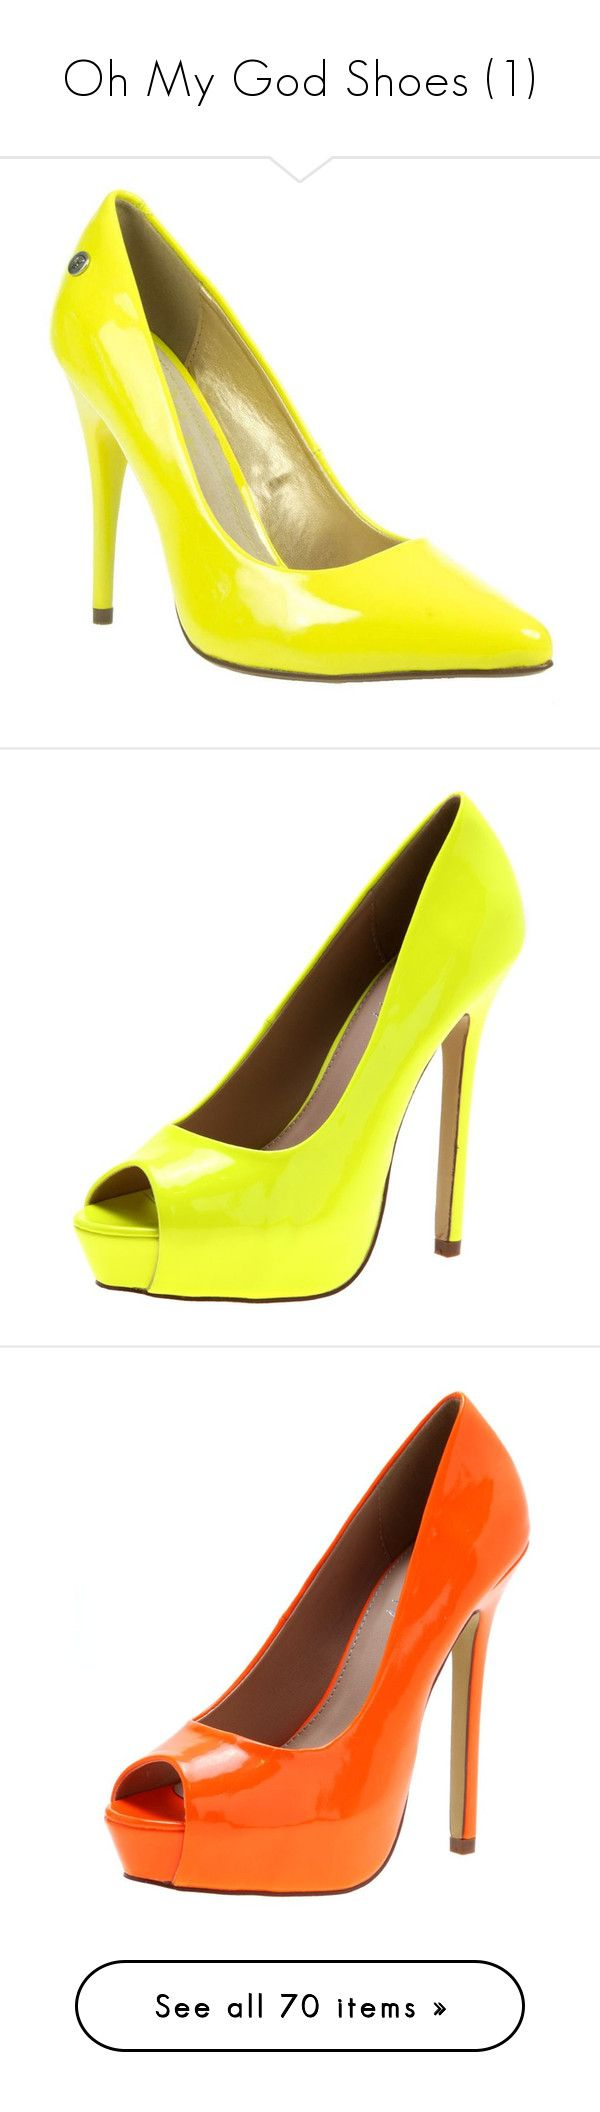 """Oh My God Shoes (1)"" by brittneysaysrawrrr ❤ liked on Polyvore featuring shoes, pumps, women's footwear, high heel shoes, neon pumps, fluorescent yellow pumps, yellow stiletto pumps, yellow pumps, heels and platform shoes"